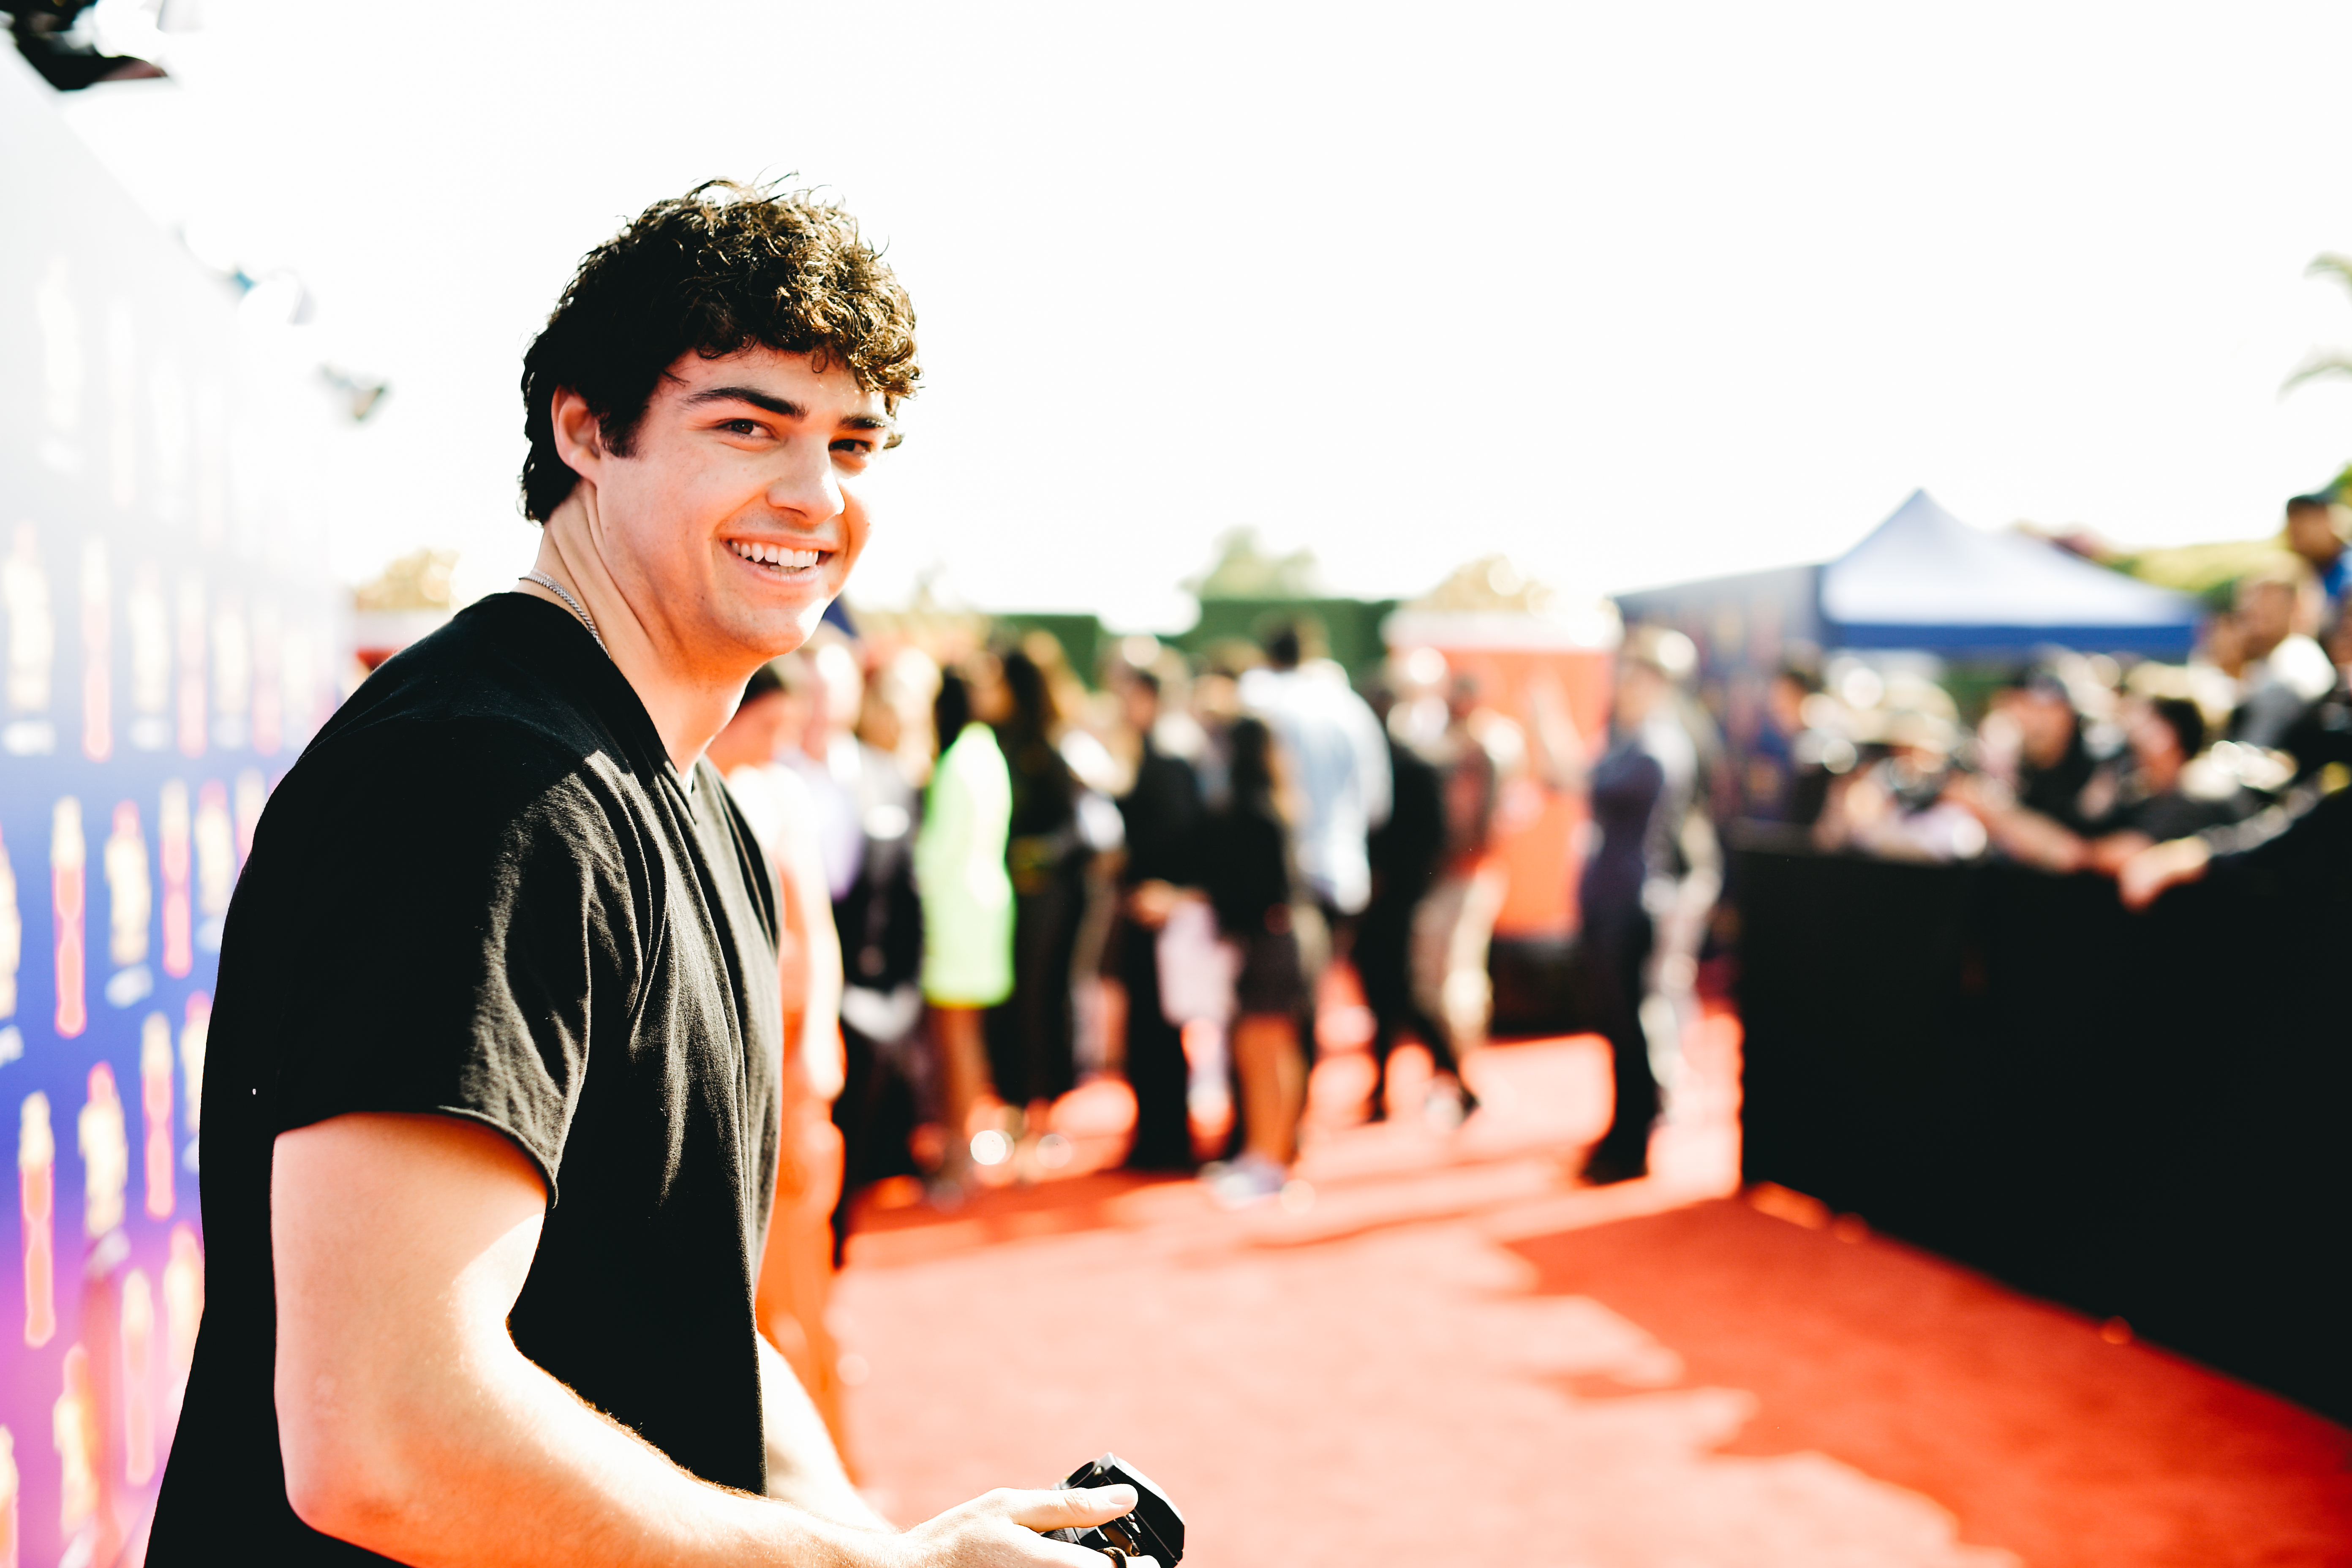 SANTA MONICA, CALIFORNIA - JUNE 15:  (EDITORS NOTE: Image has been processed using digital filters) Noah Centineo attends the 2019 MTV Movie and TV Awards Noah Centineo at Barker Hangar on June 15, 2019 in Santa Monica, California. (Photo by Matt Winkelmeyer/Getty Images for MTV)